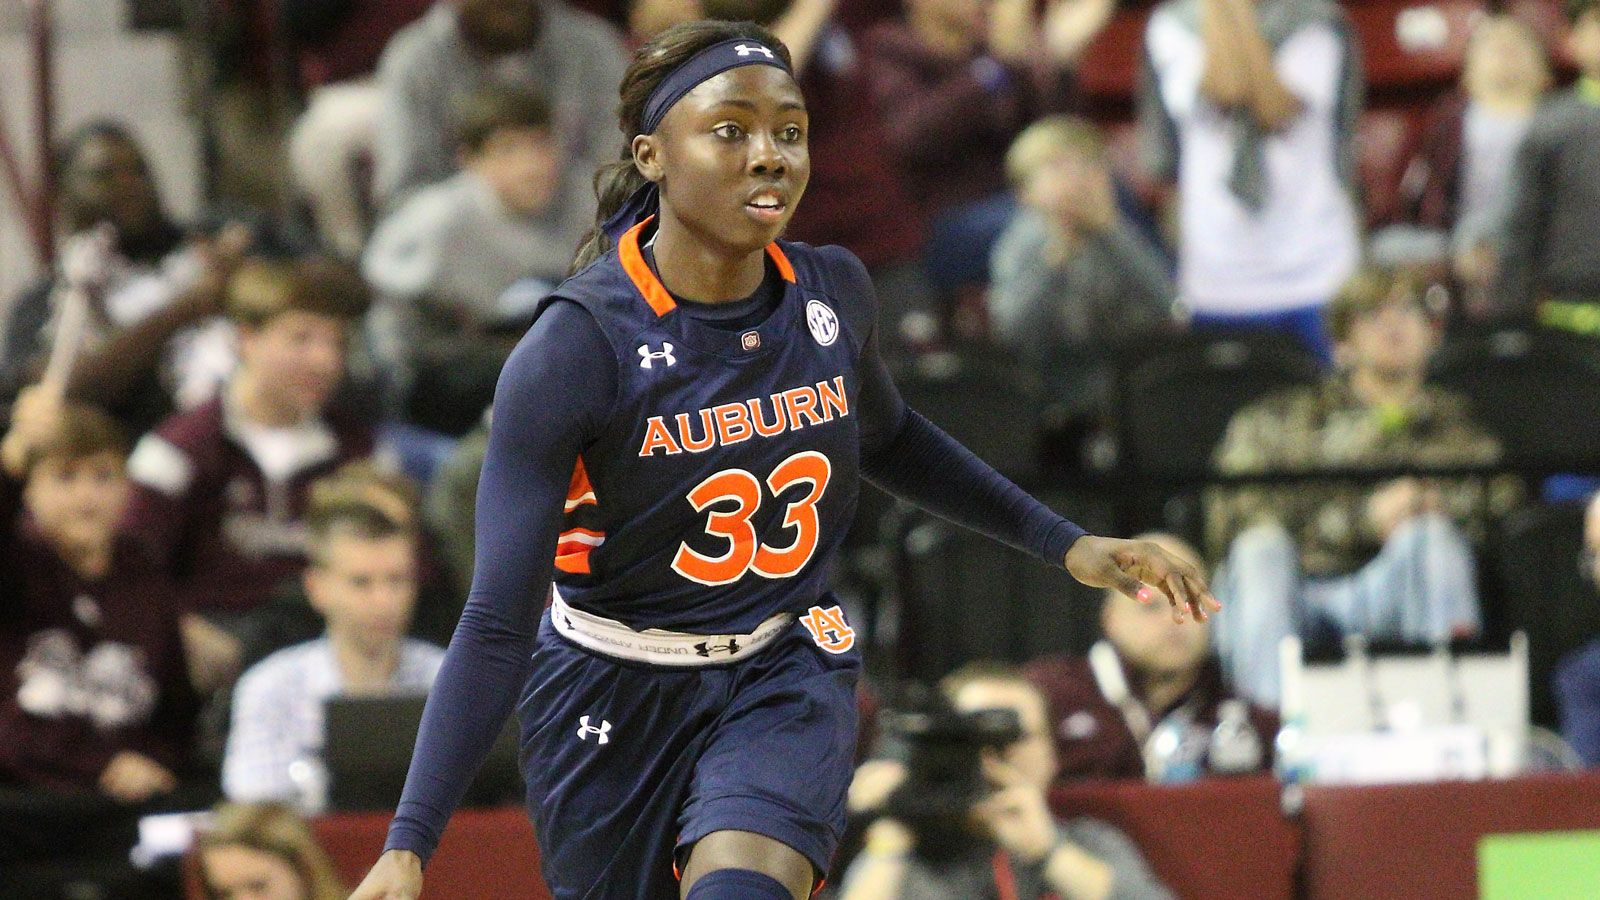 Auburn women escape Alabama 59-55